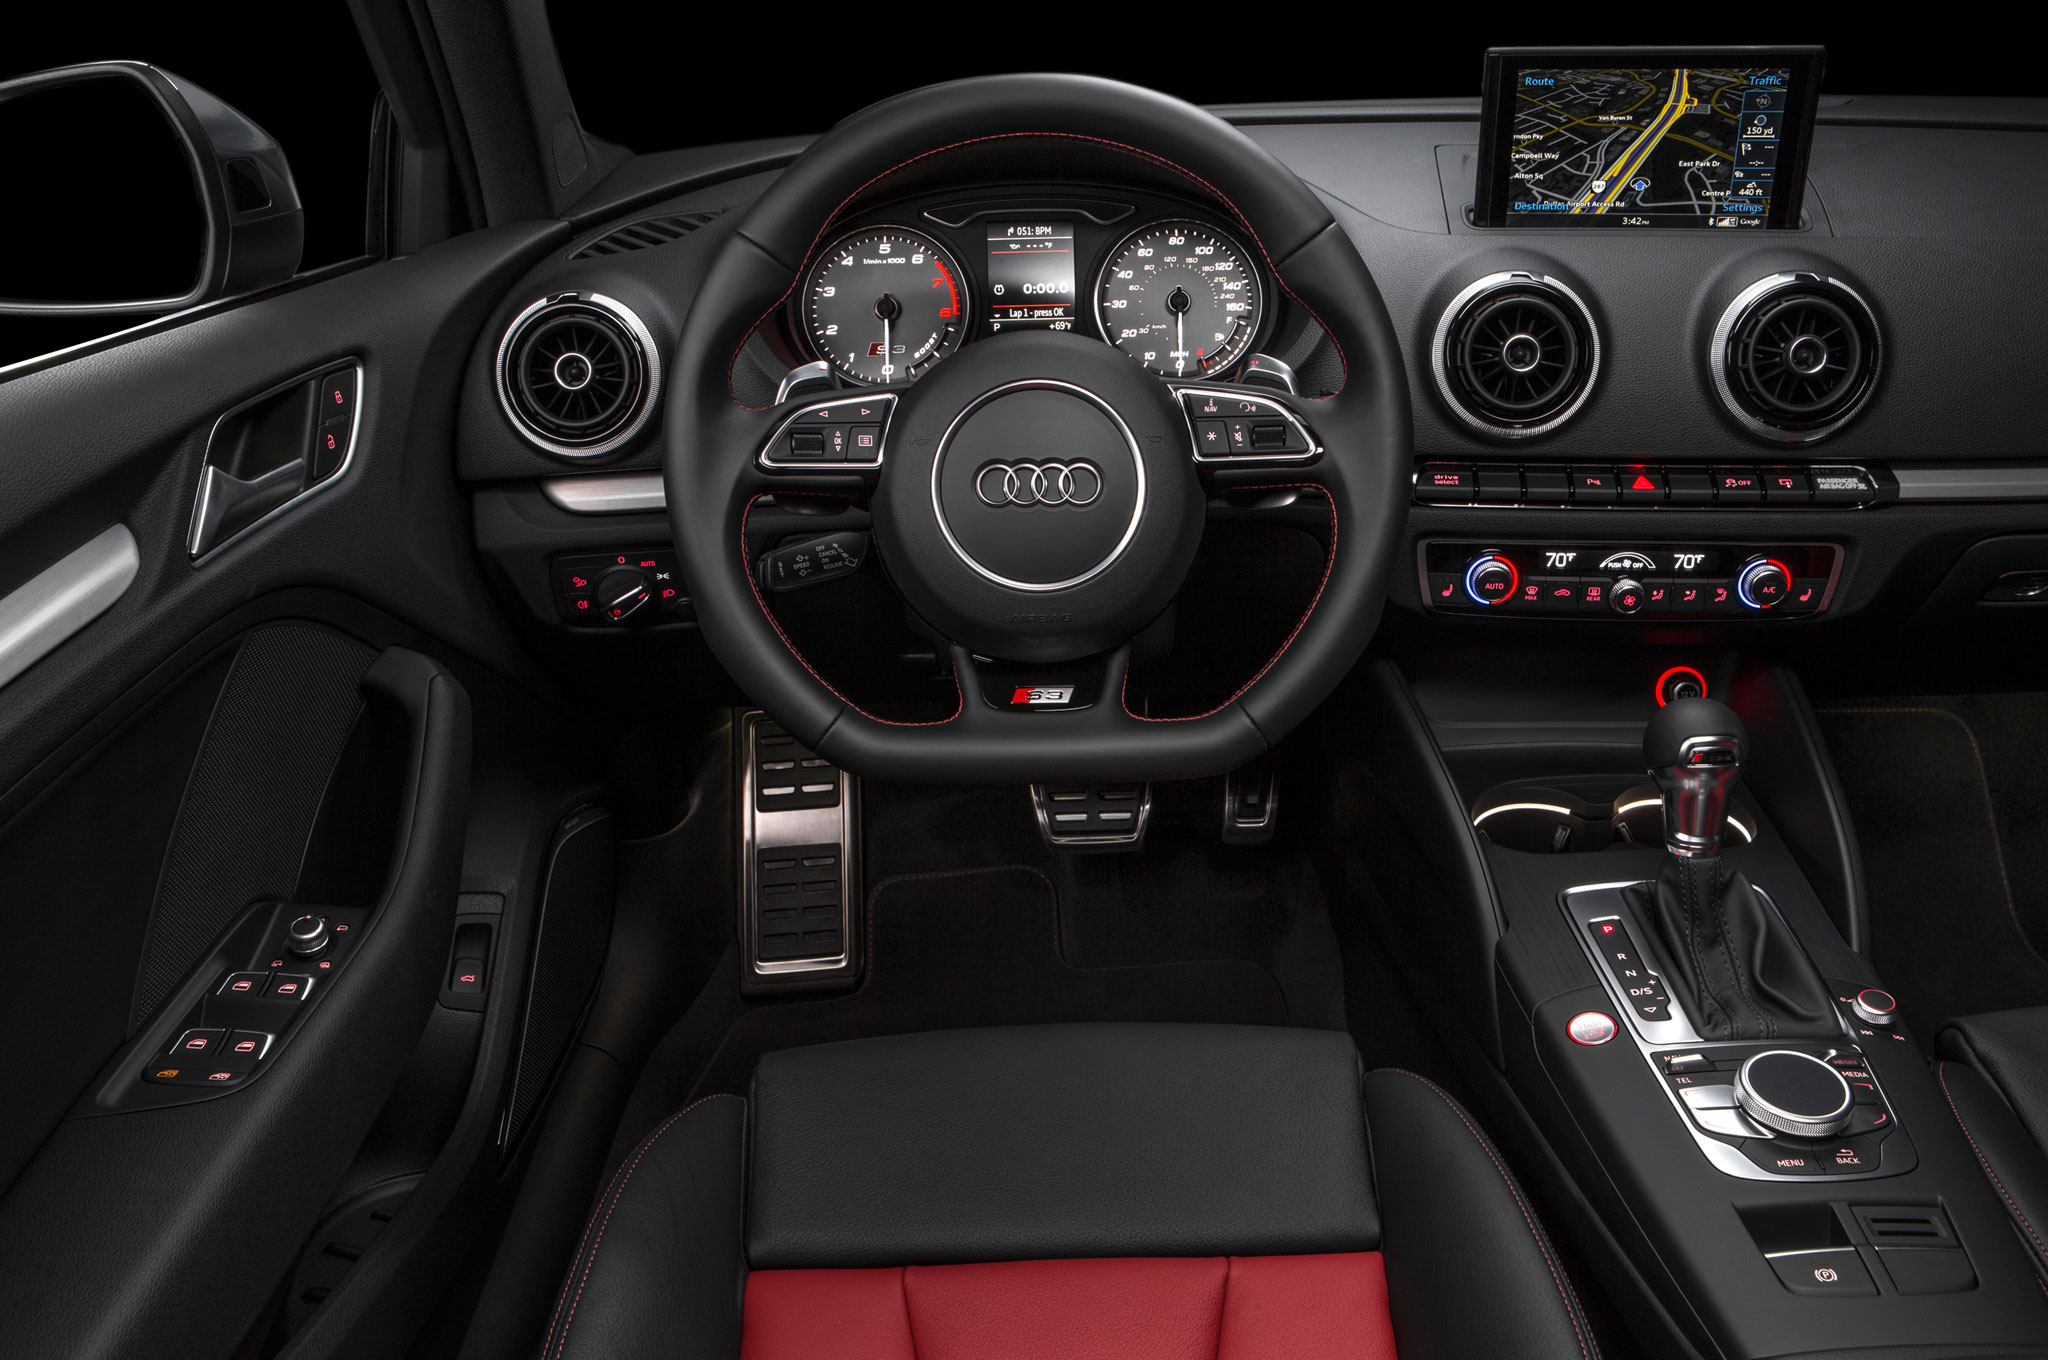 2015 Audi S3 Sedan Limited Edition Cockpit Interior (Photo 6 of 10)